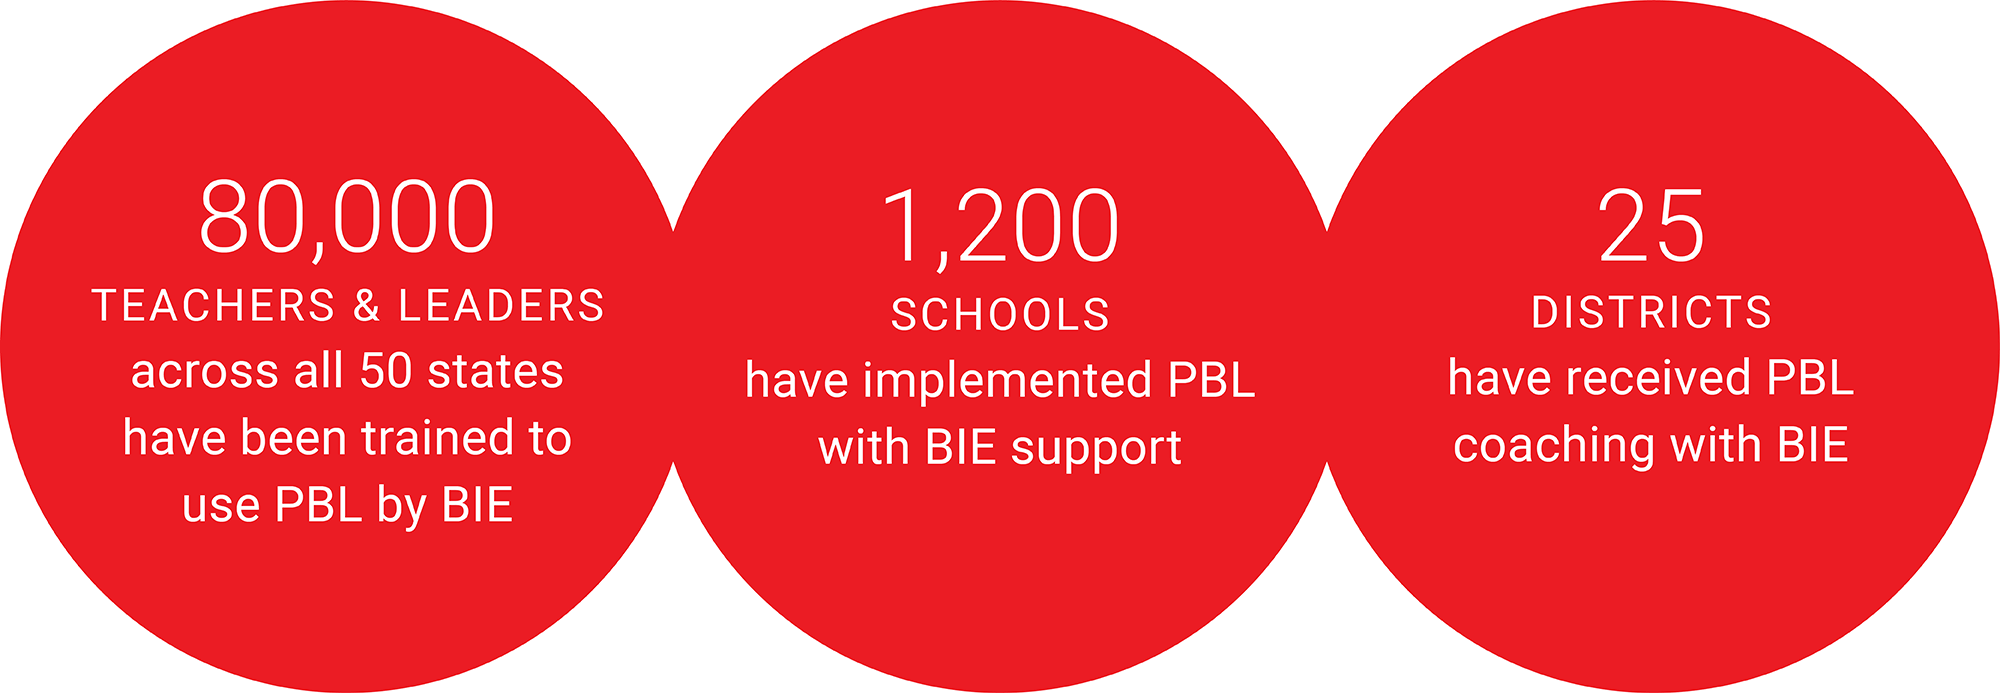 80,000 <em>teachers and leaders</em> across all 50 states have been trained to use PBL by BIE. 1,200 <em>schools</em> have implemented PBL with BIE support. 25 <em>districts</em> have received PBL coaching with BIE